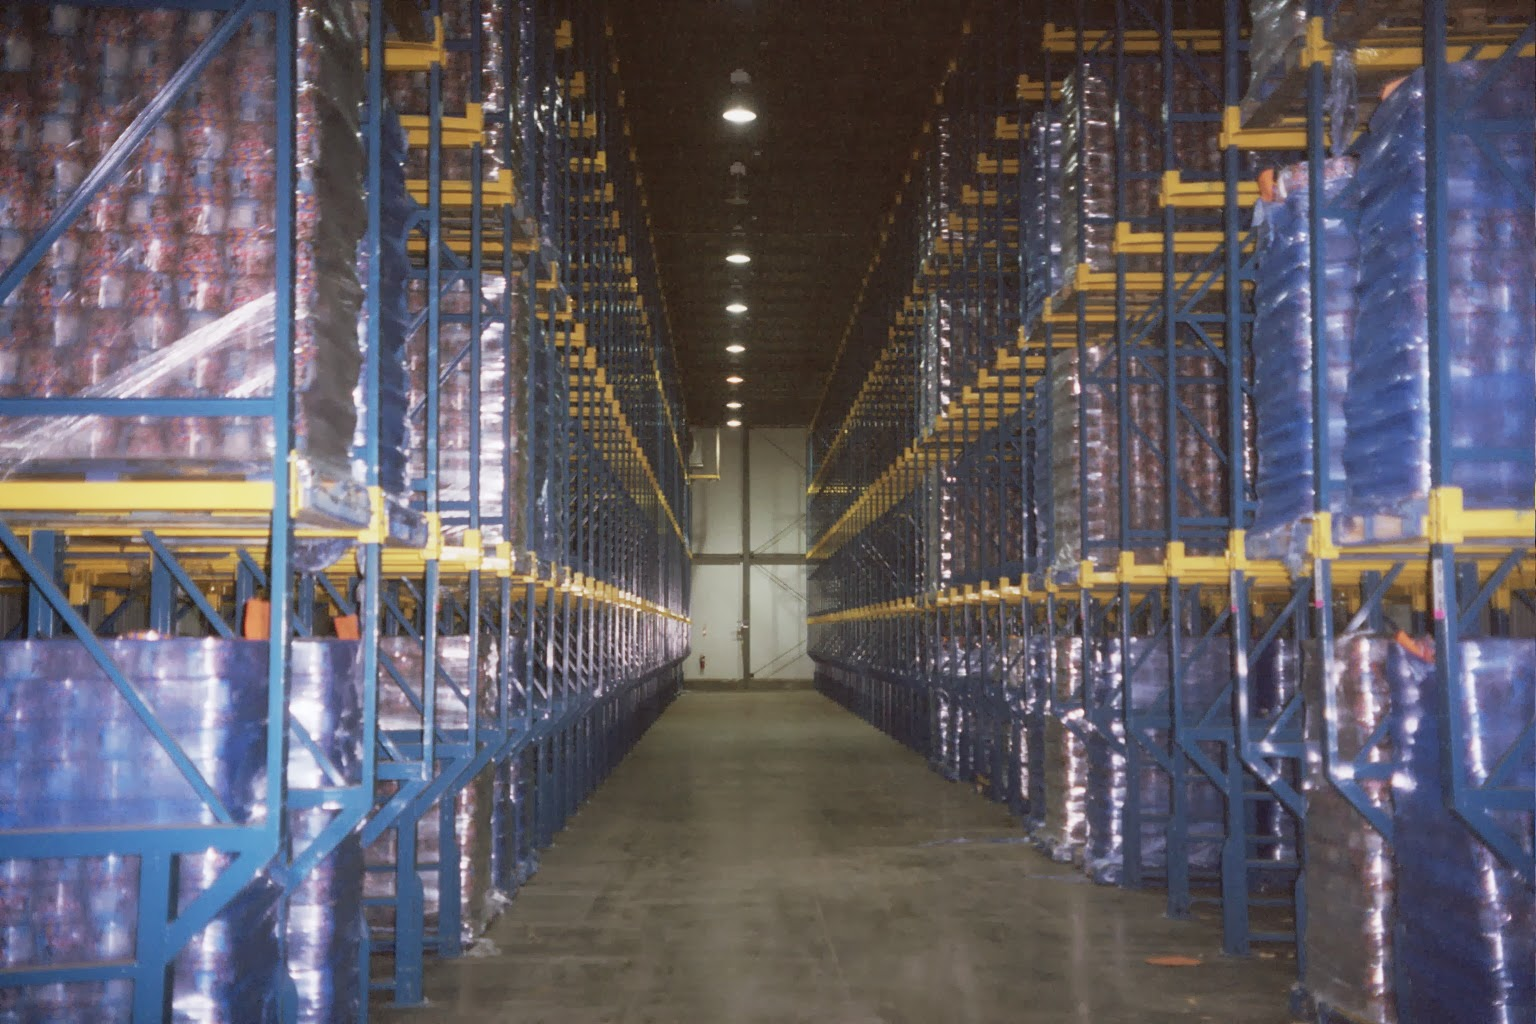 Hawk Distribution Services: When do refrigerated food processing